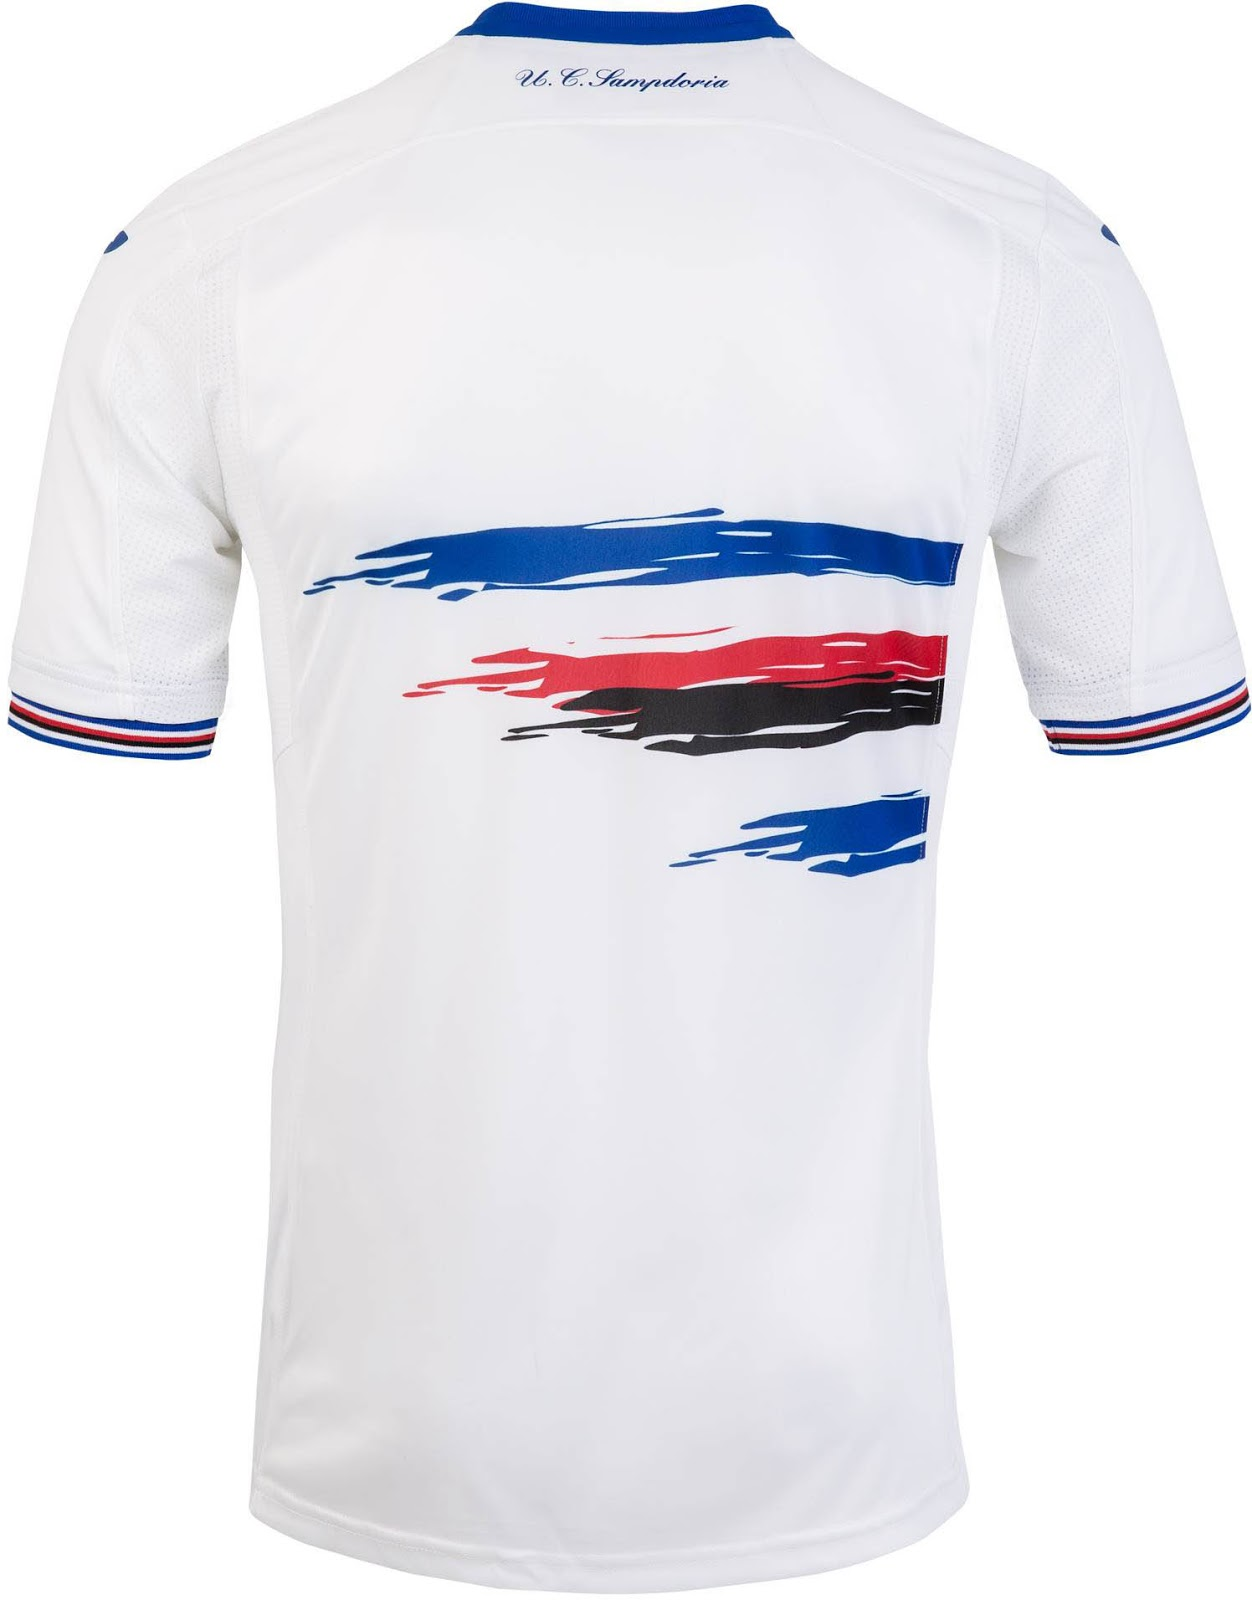 sampdoria-16-17-kits-away-reverse